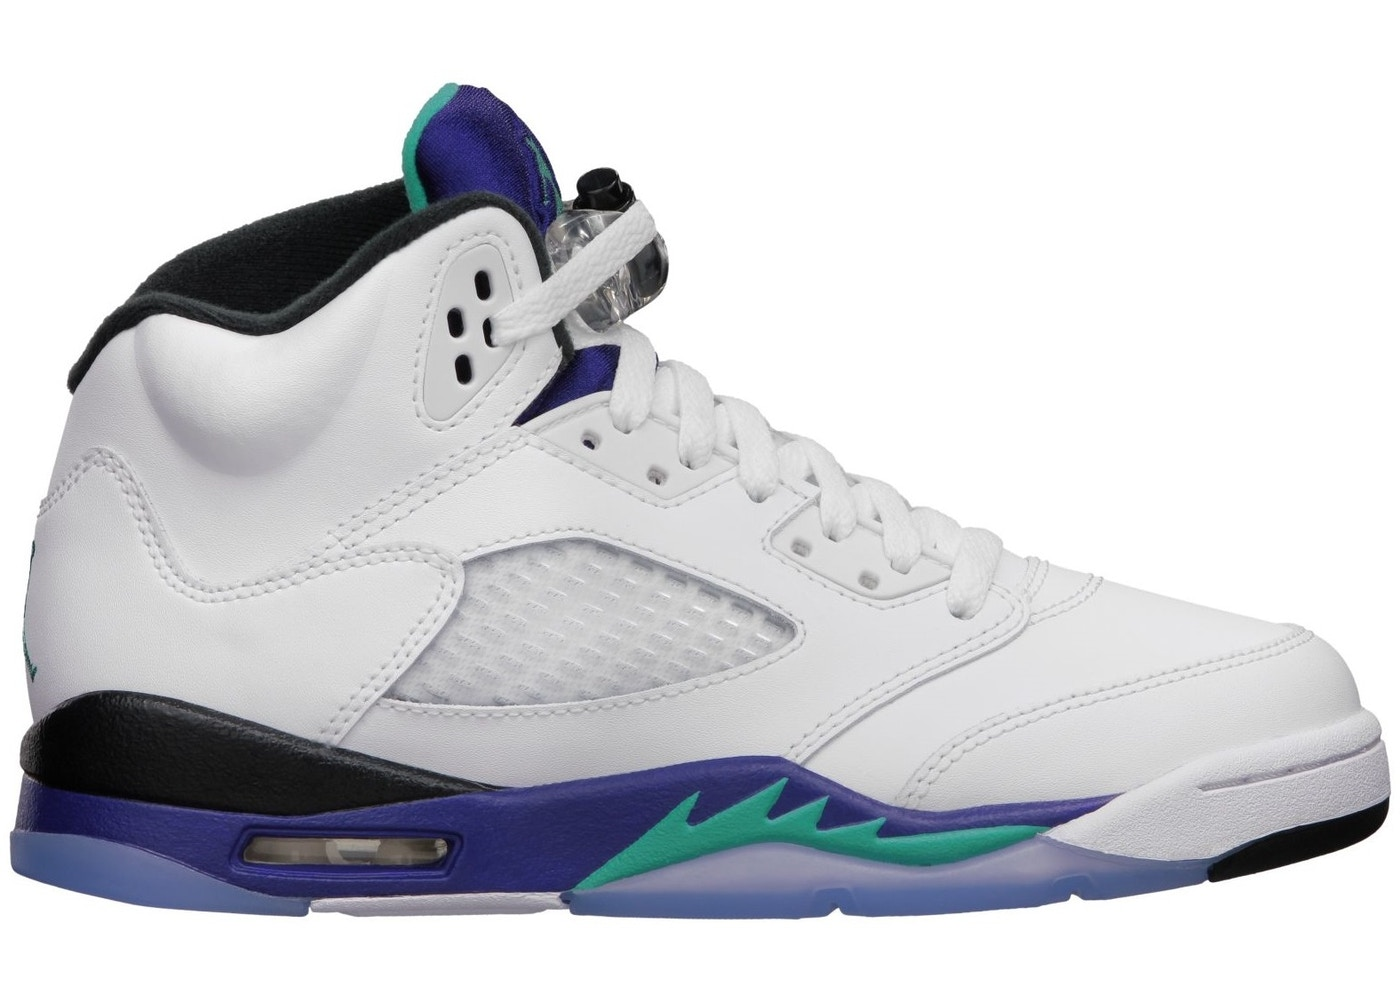 meet e21e1 12af6 Jordan 5 Retro Grape 2013 (GS) - 440888-108